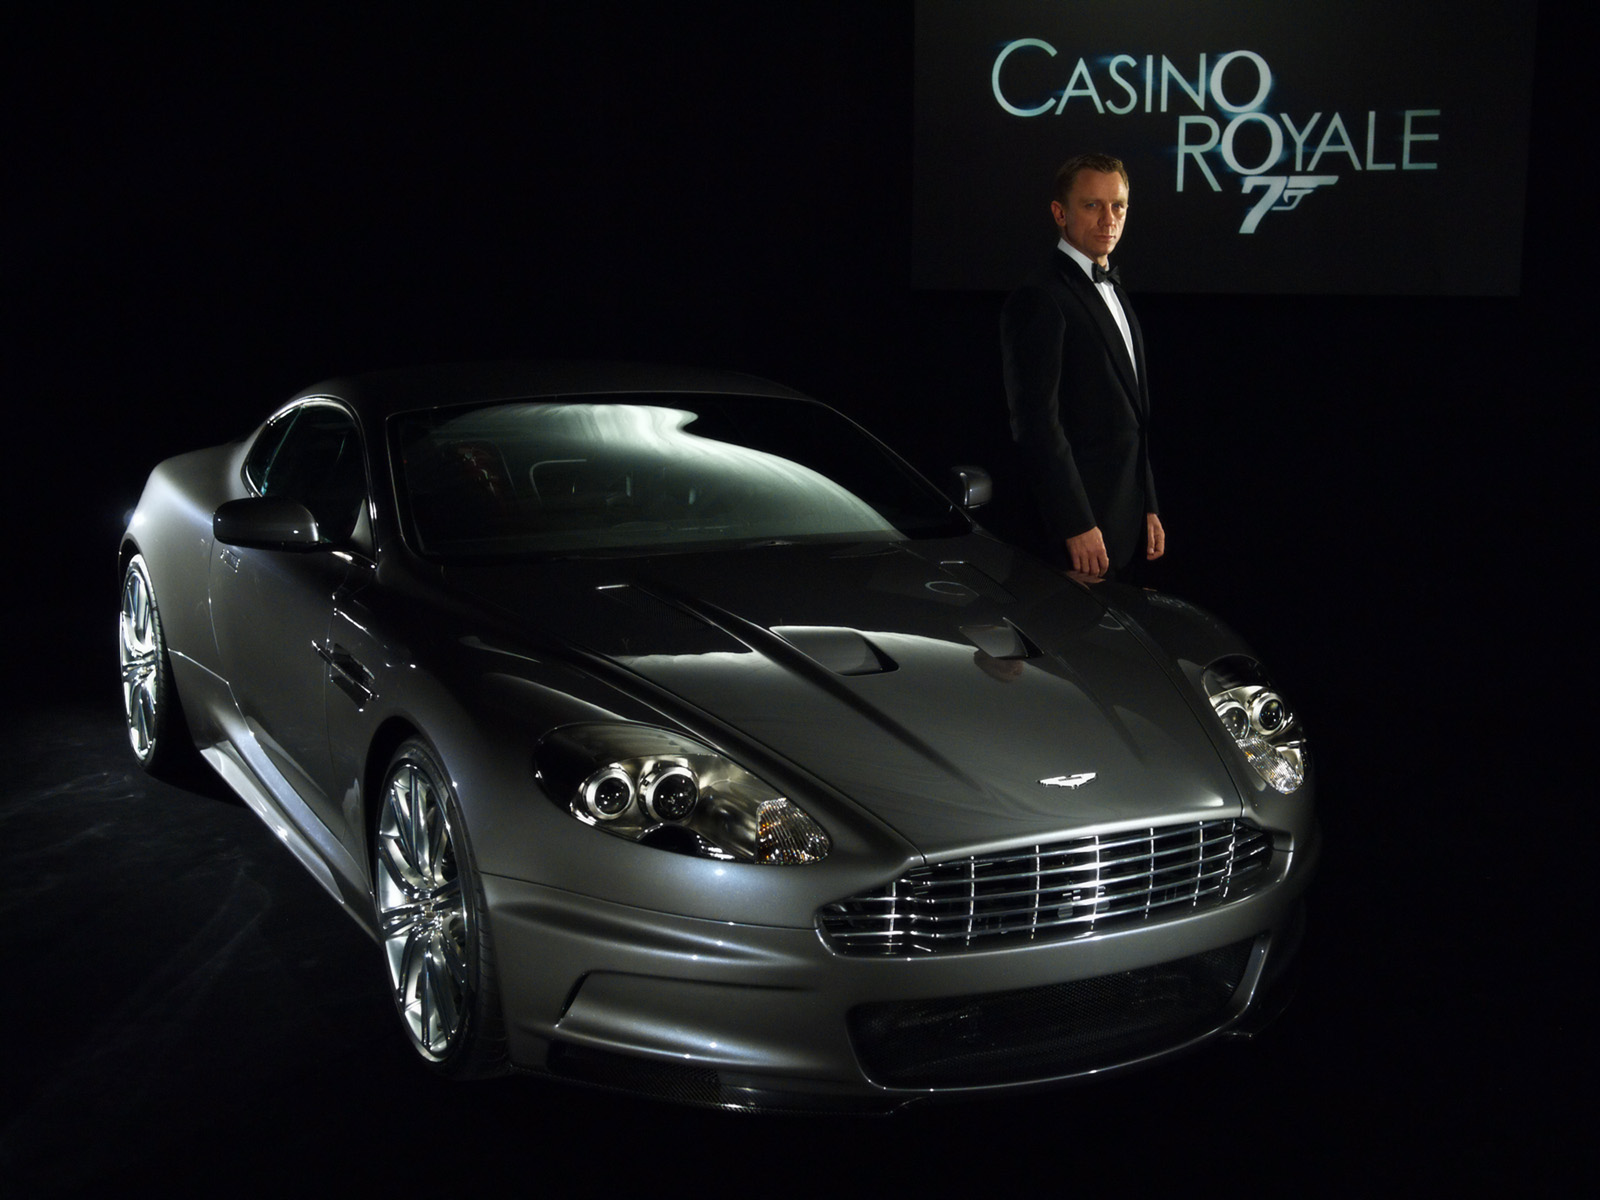 http://1.bp.blogspot.com/-ULueIuUe6X4/TY1ly3OemnI/AAAAAAAAALU/MDElOC_hkk0/s1600/aston-martin-dbs-james-bond-wallpaper.jpg